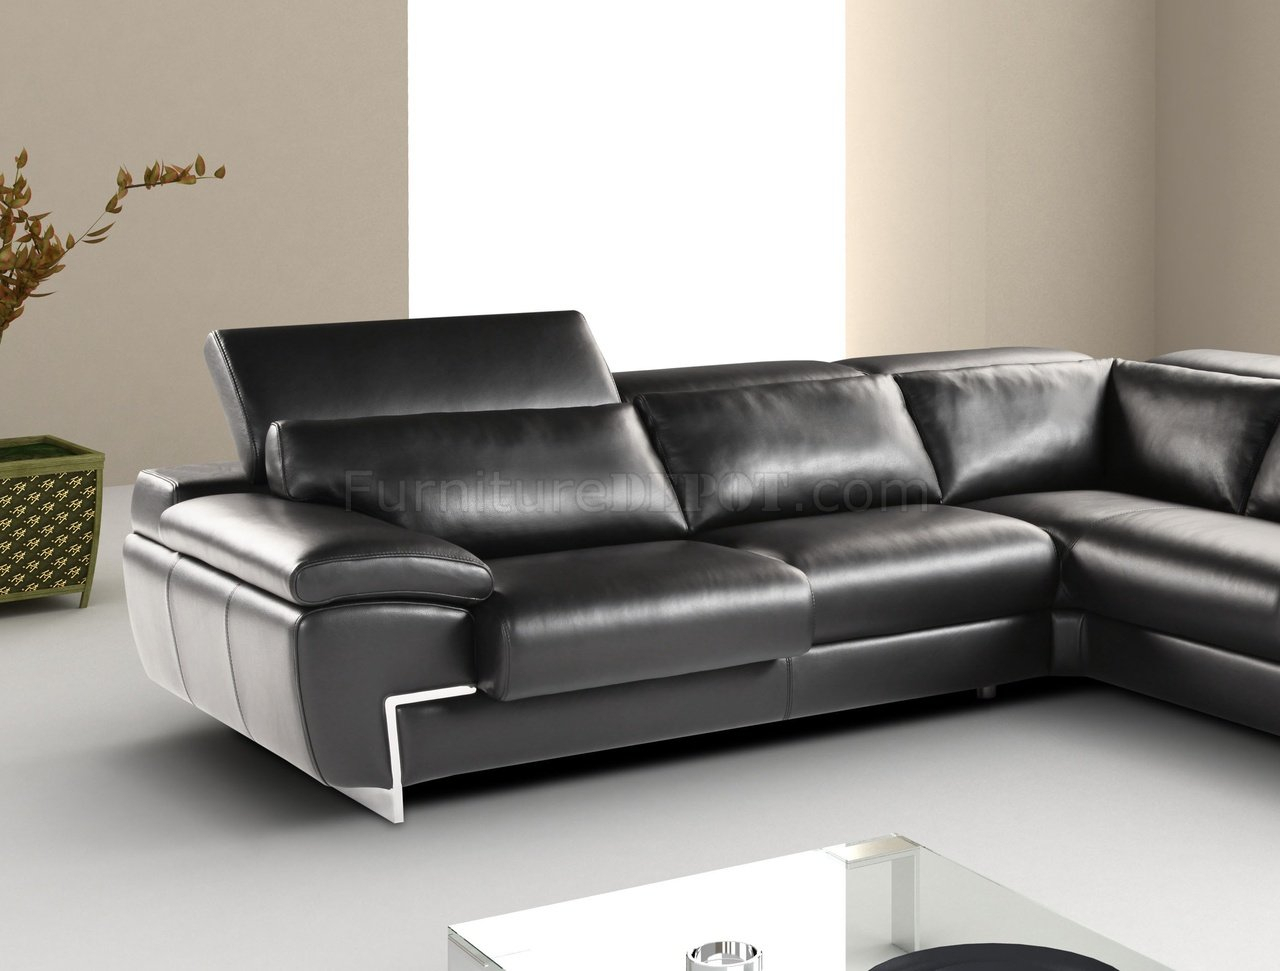 Black Full Leather Modern Sectional Sofa W/Adjustable Headrest Throughout Wynne Contemporary Sectional Sofas Black (View 12 of 15)